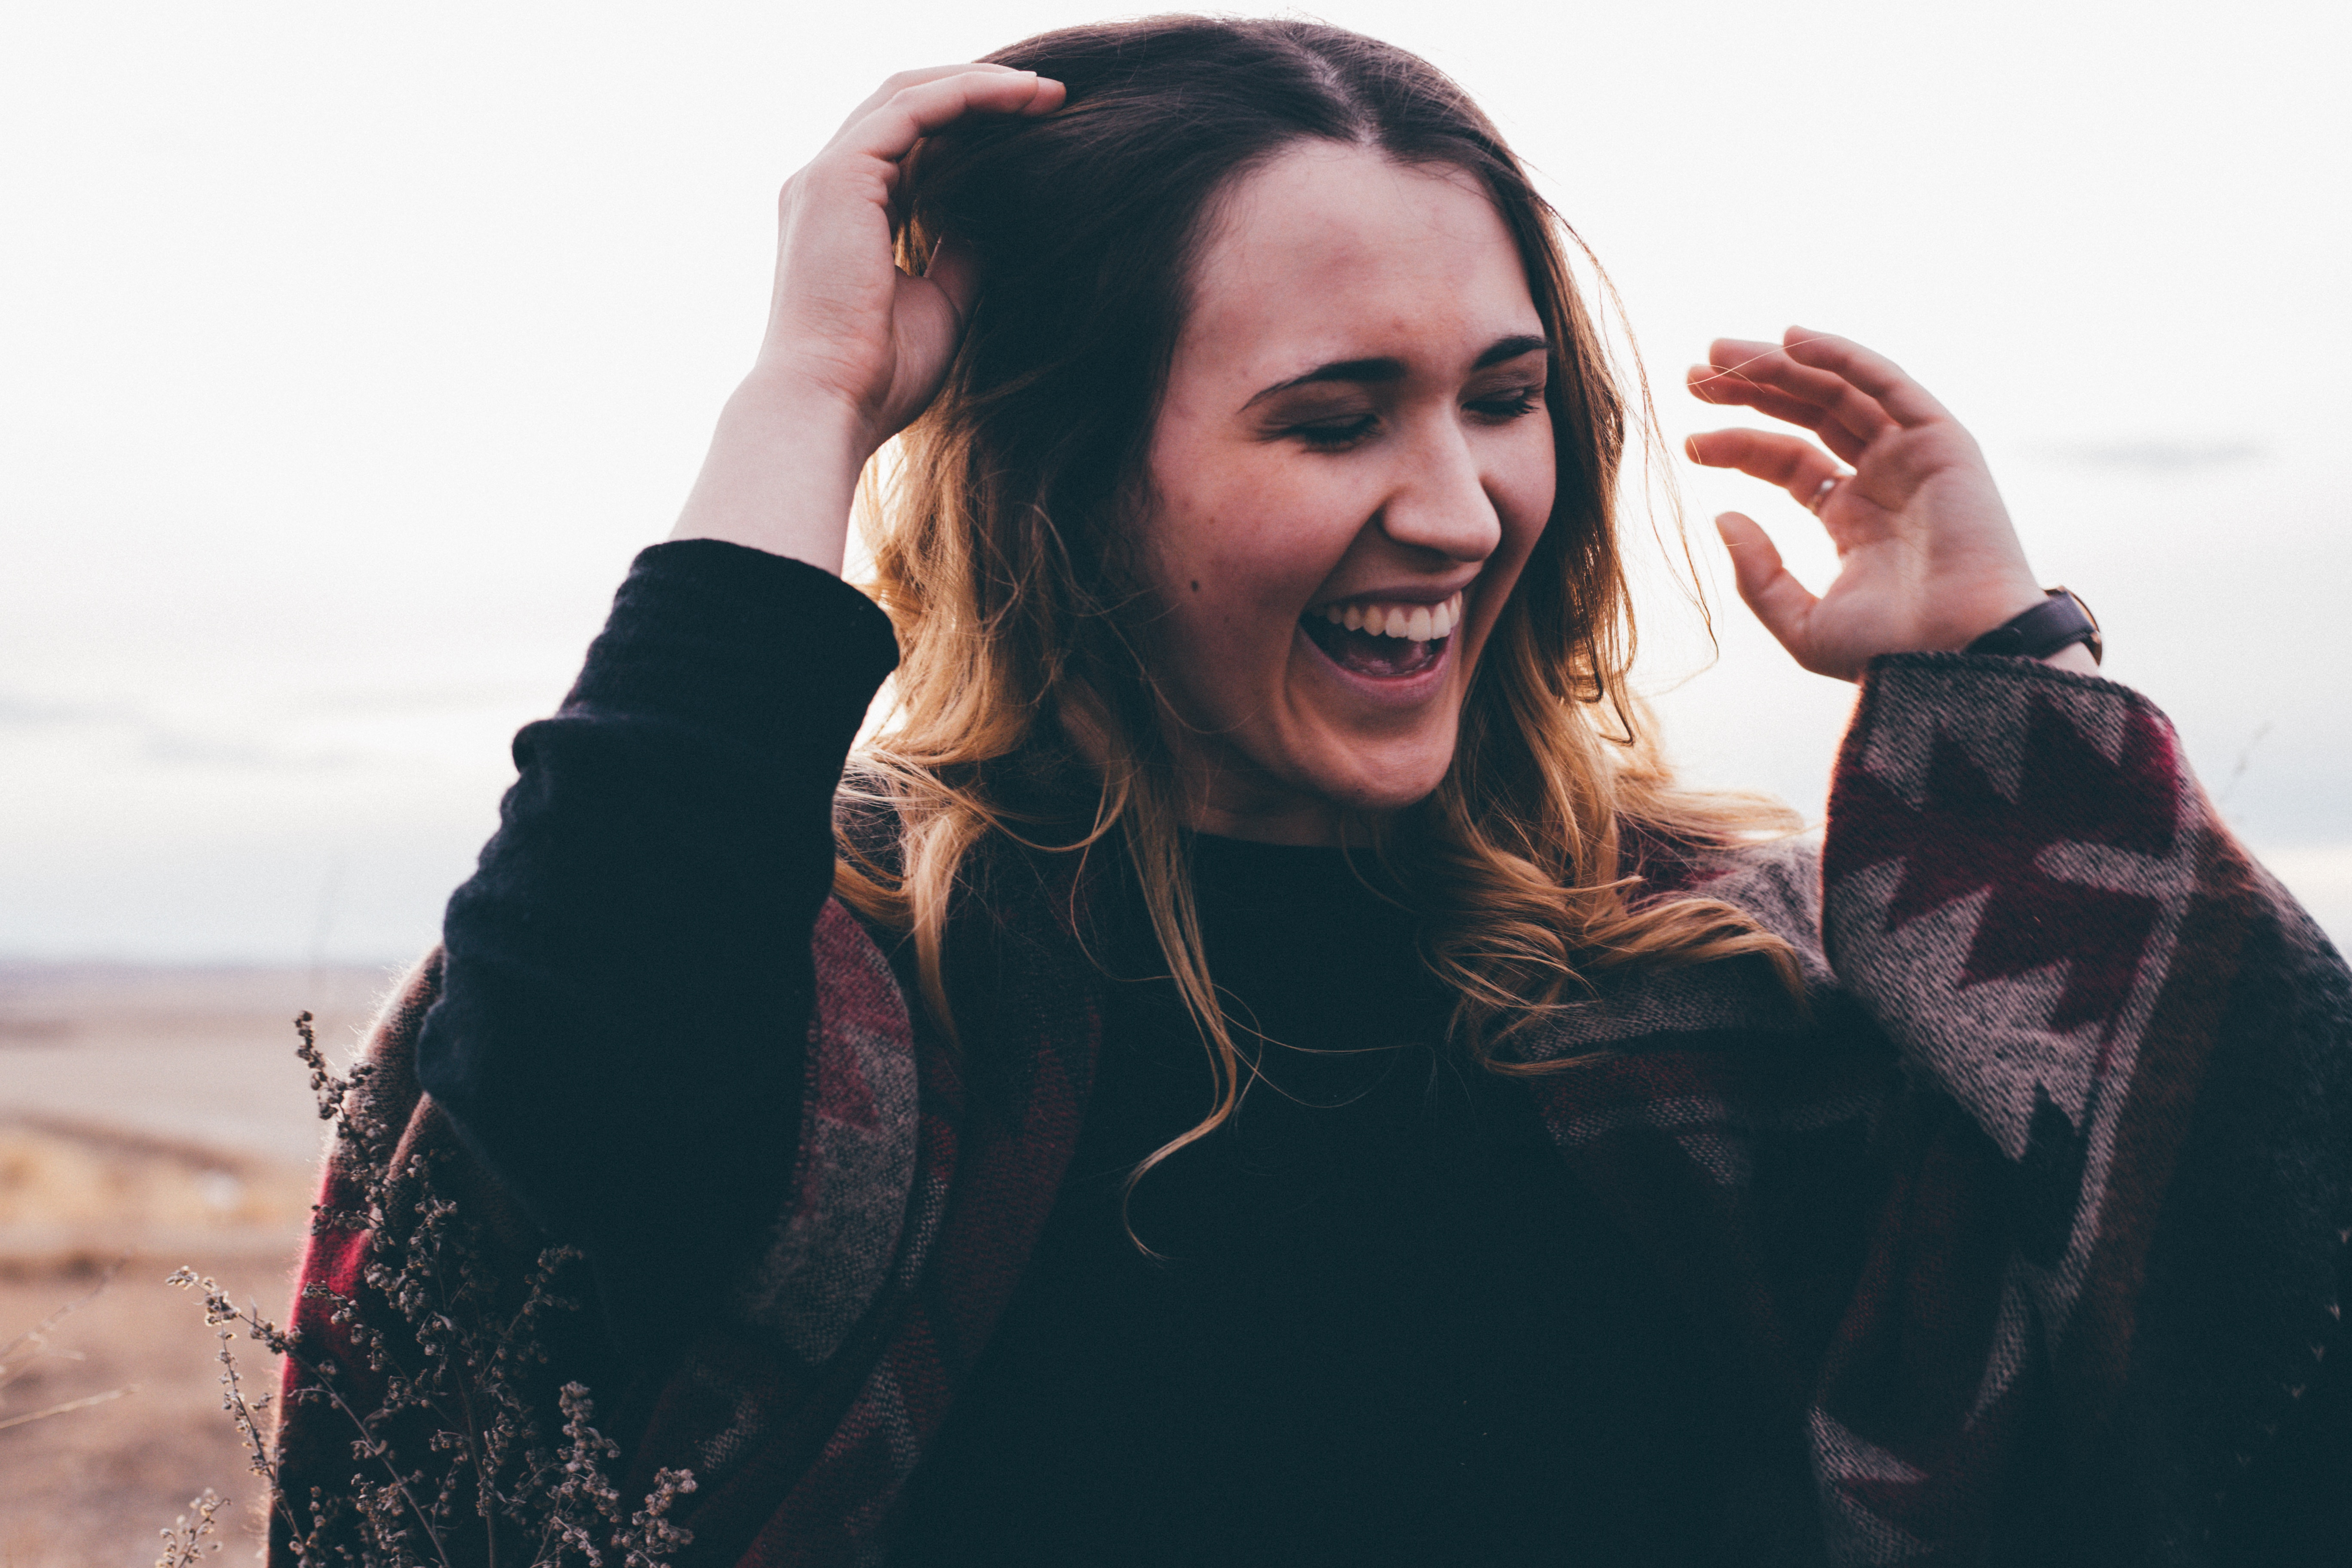 Woman wearing sweater laughs, one hand on hair, one in air; gratitude for women's health care advances